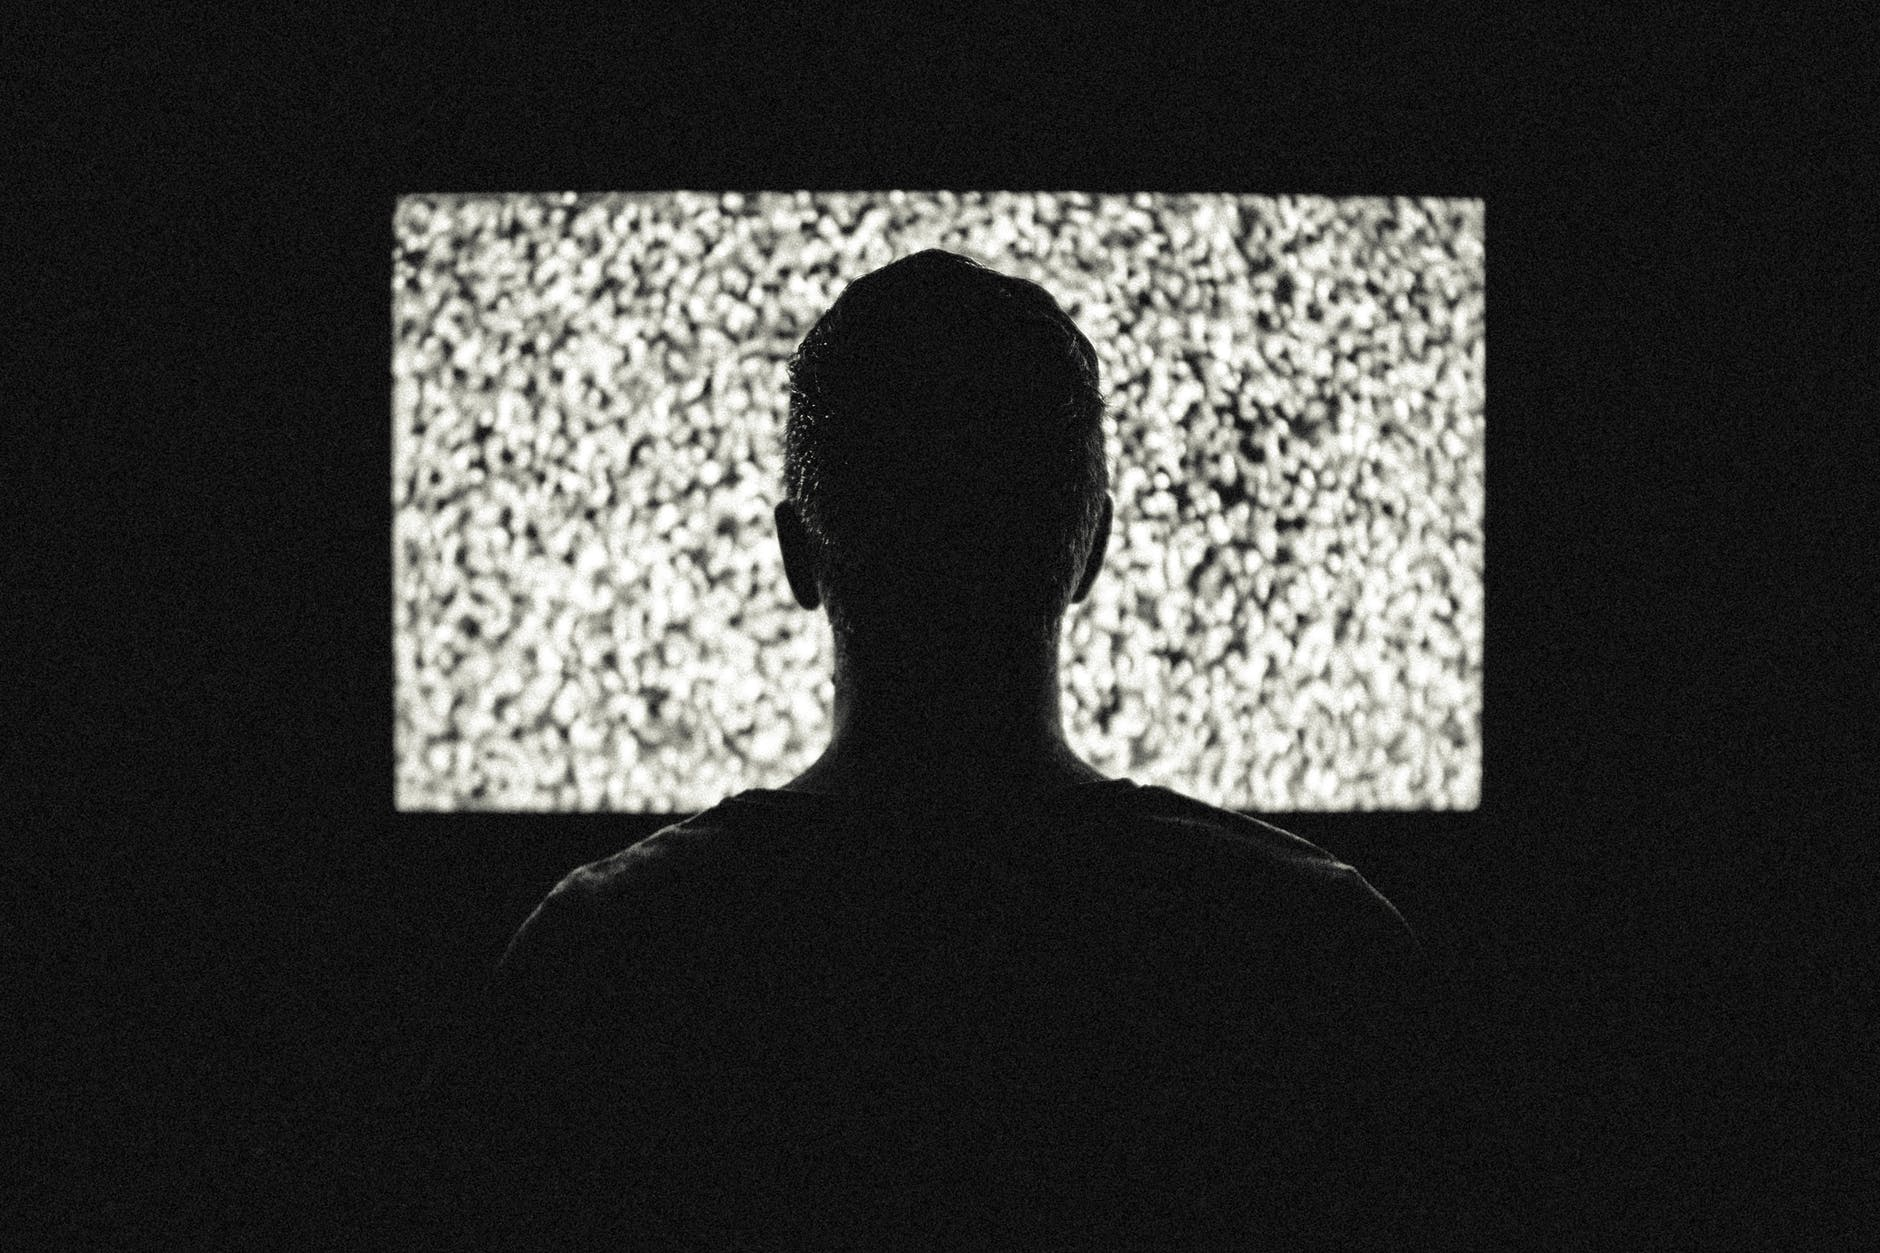 Man sitting in front of static on TV silhouette